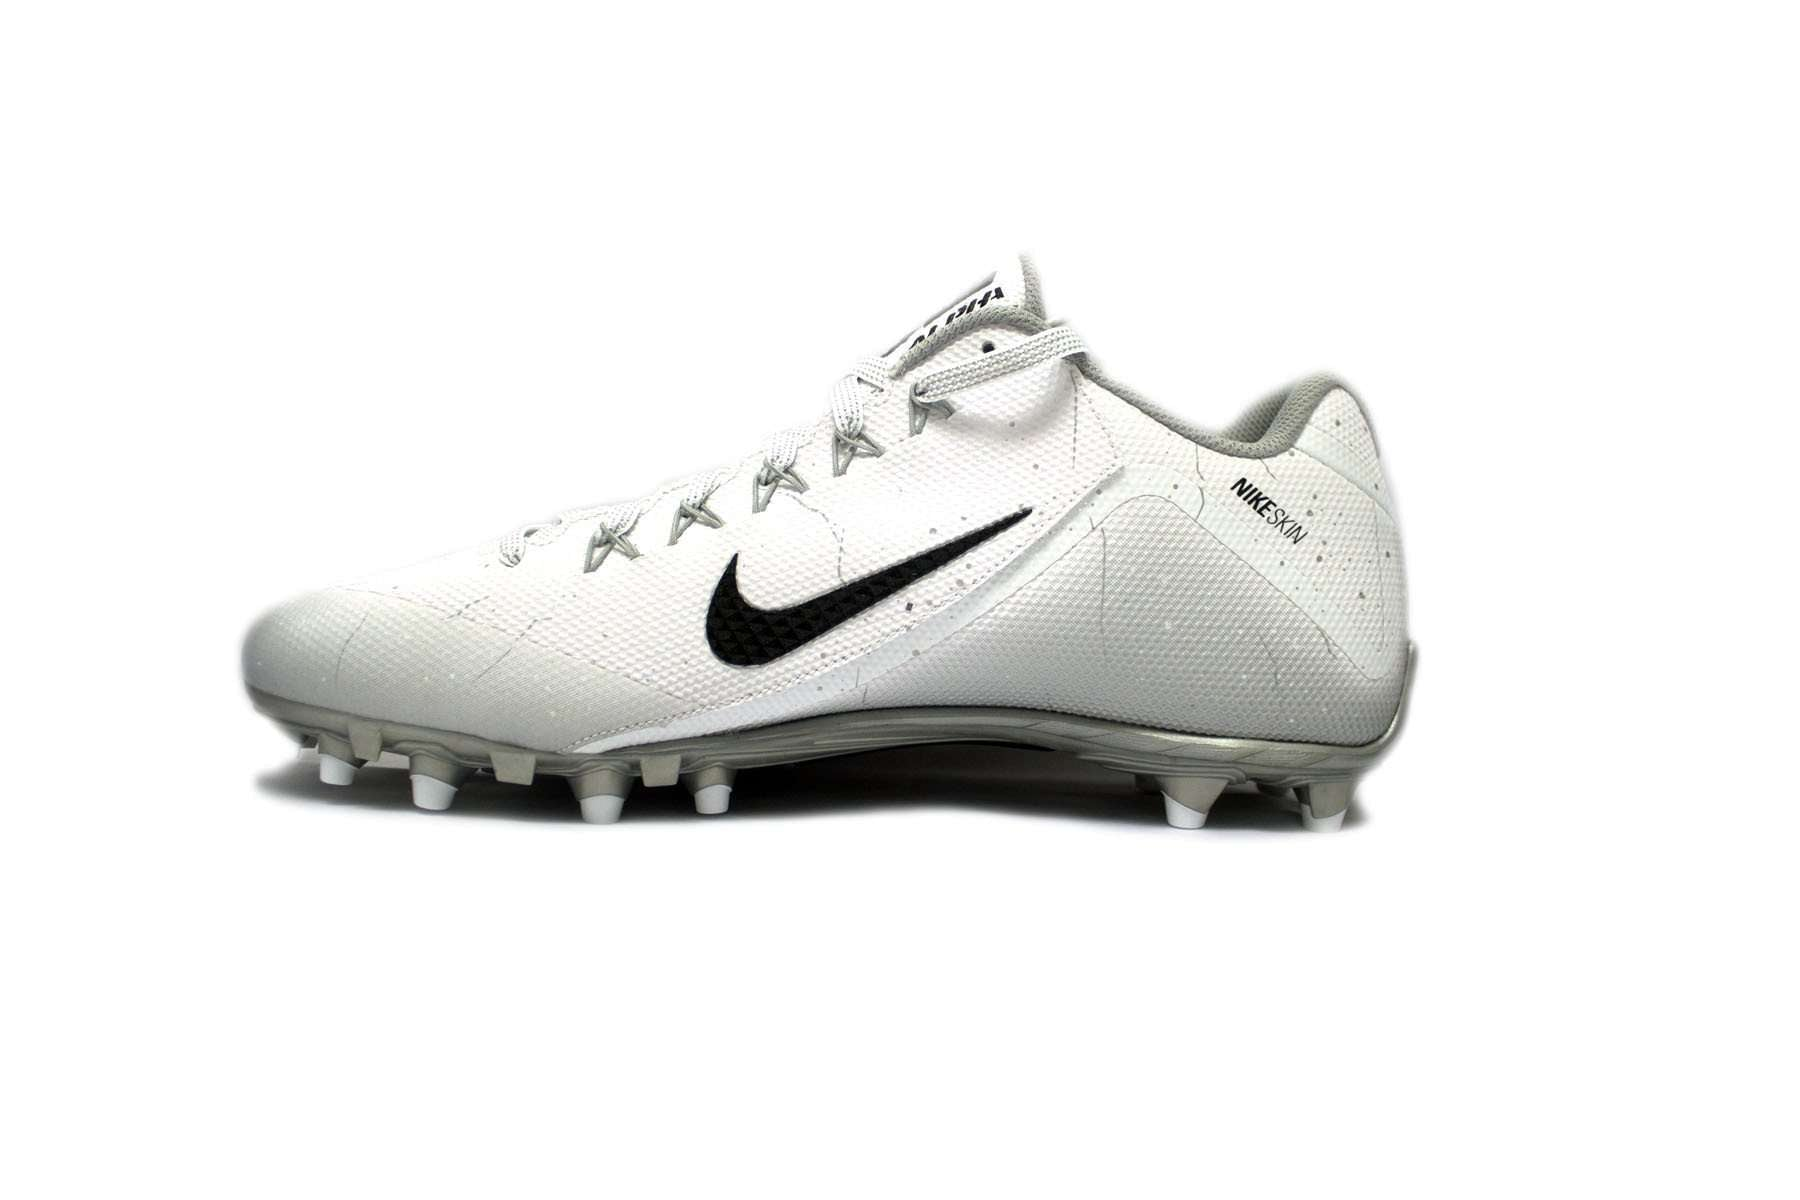 1f459c877394 ... Nike Alpha Pro 2 TD Football Cleats - League Outfitters ...